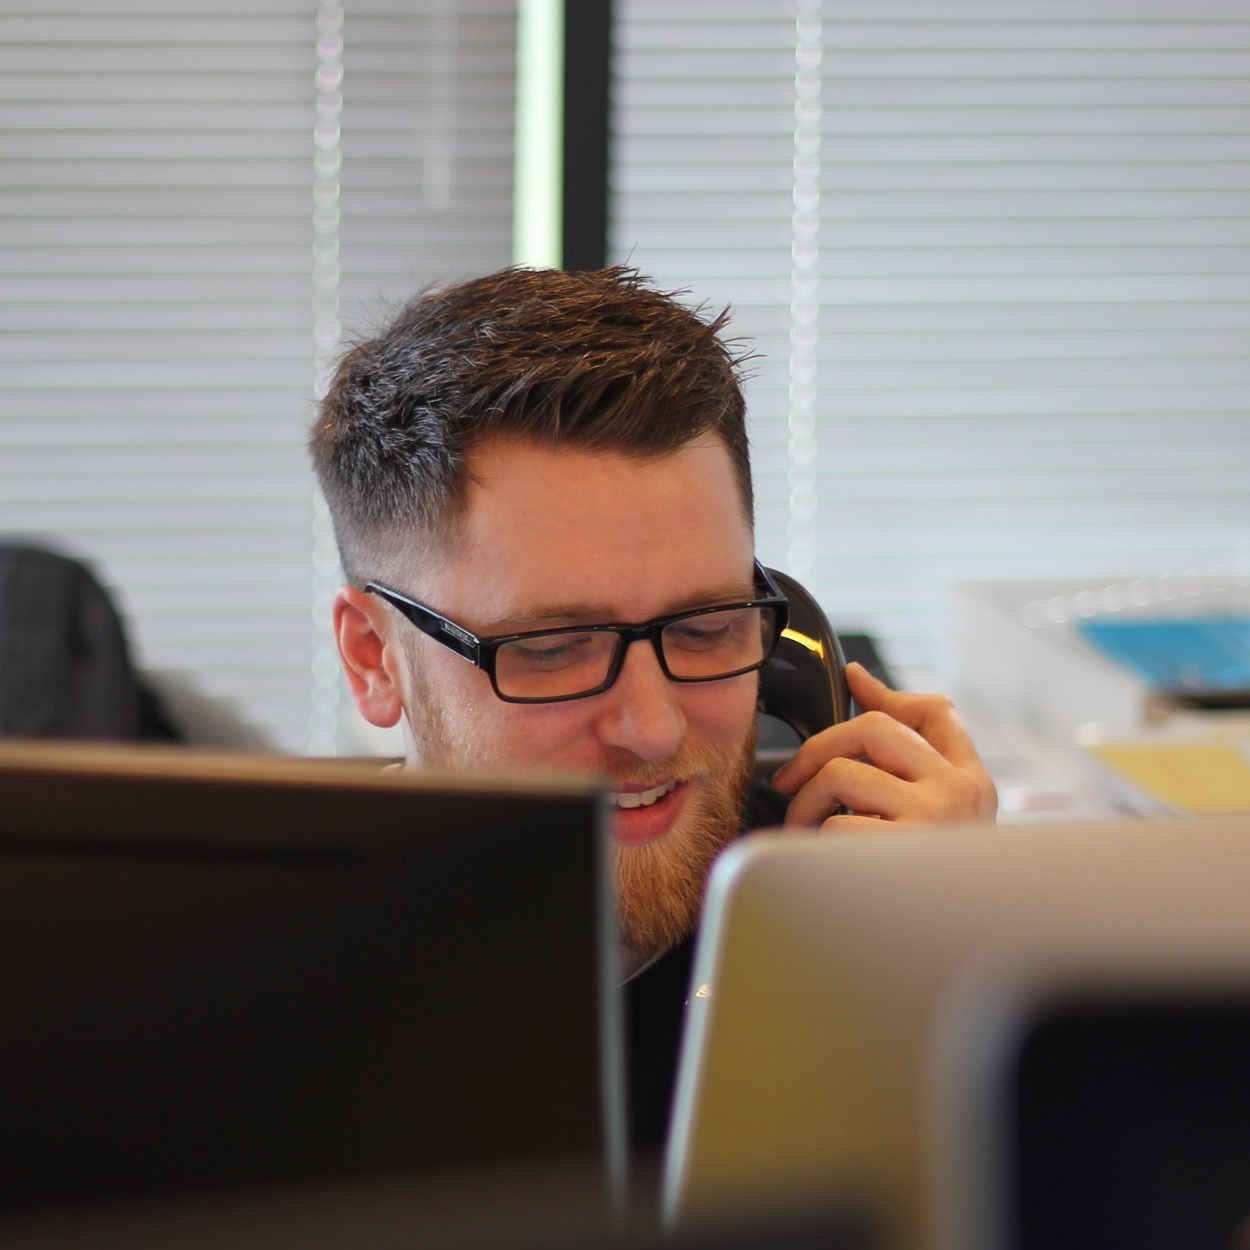 Telephone appointment assistant -